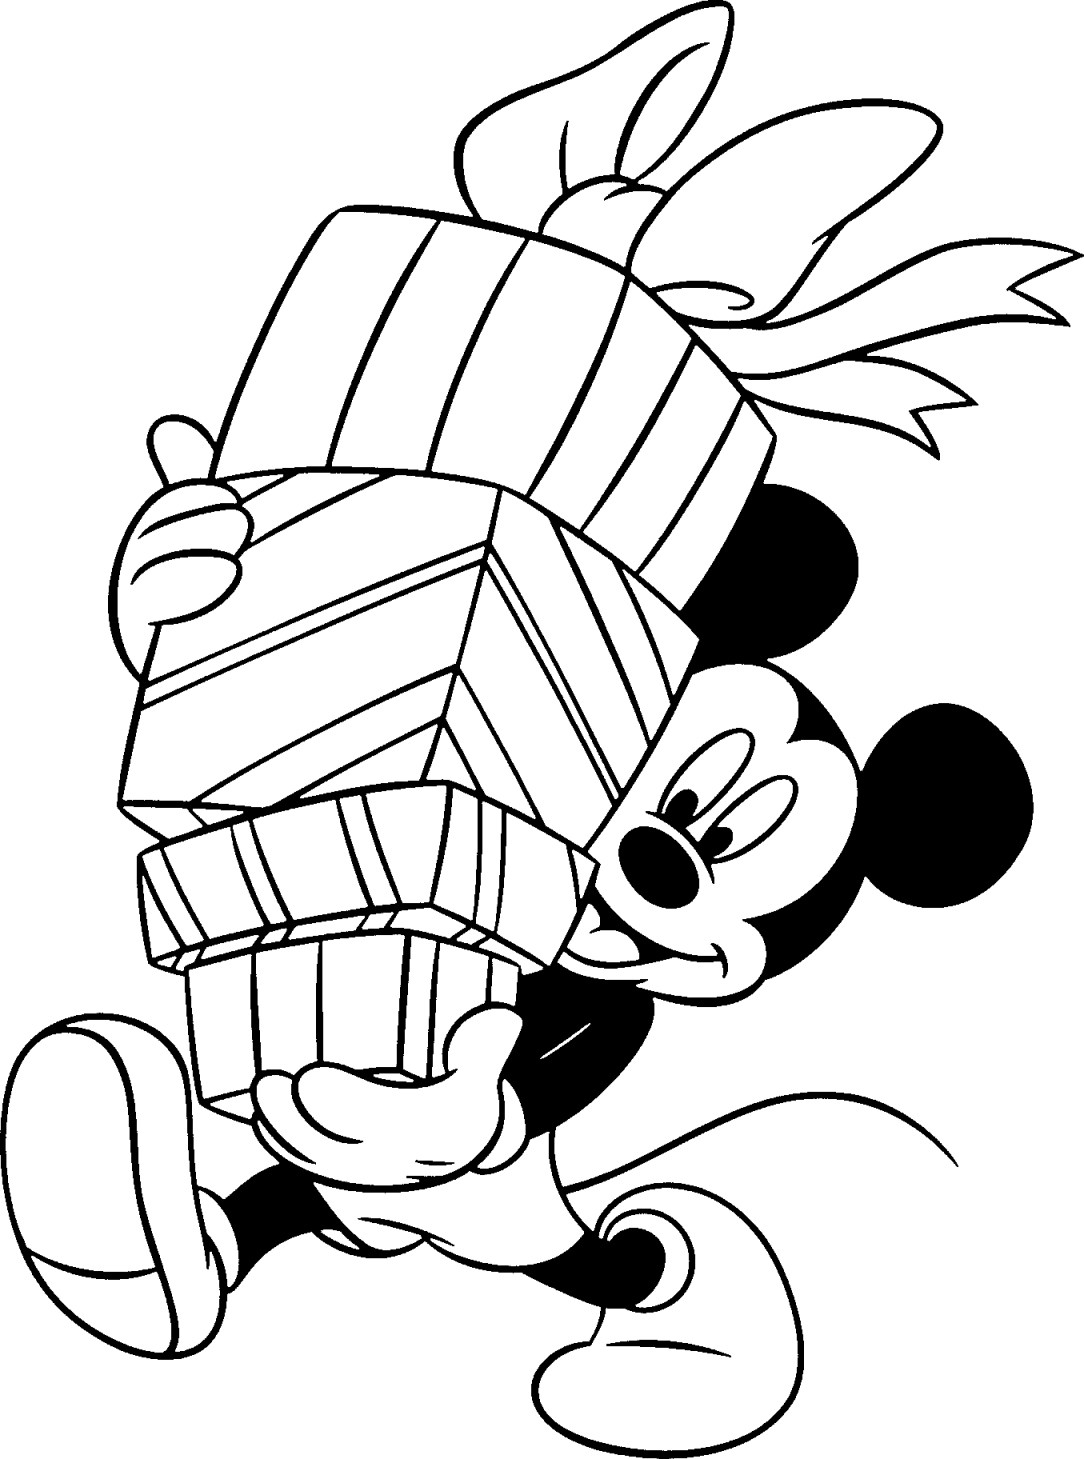 Christmas Coloring Pages Disney.Free Disney Christmas Printable Coloring Pages For Kids